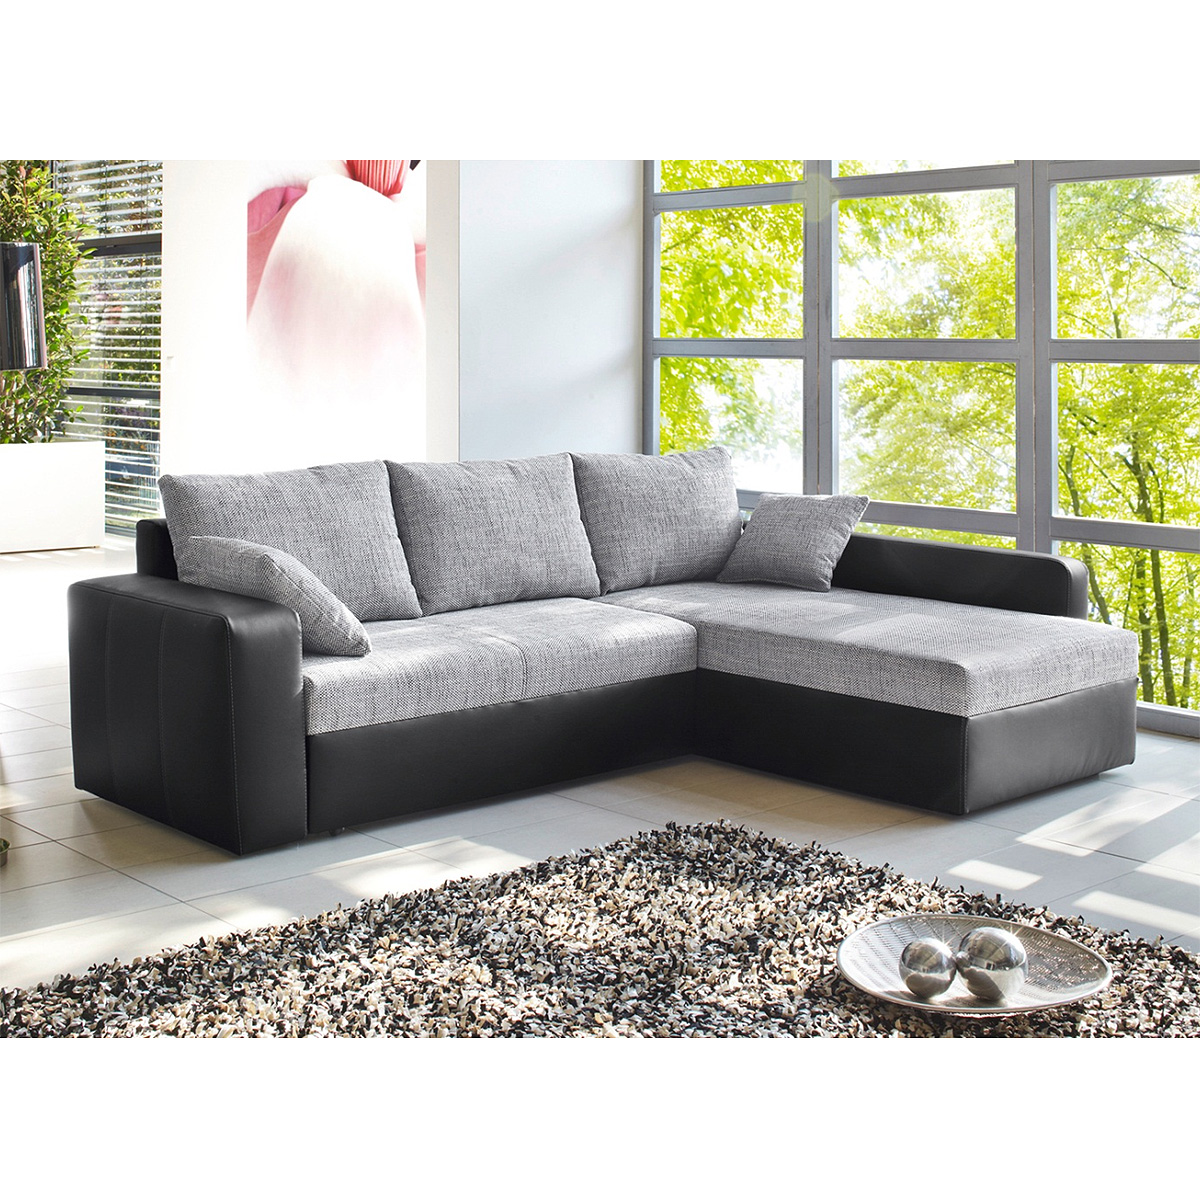 ecksofa viper sofa wohnlandschaft in schwarz grau wei. Black Bedroom Furniture Sets. Home Design Ideas